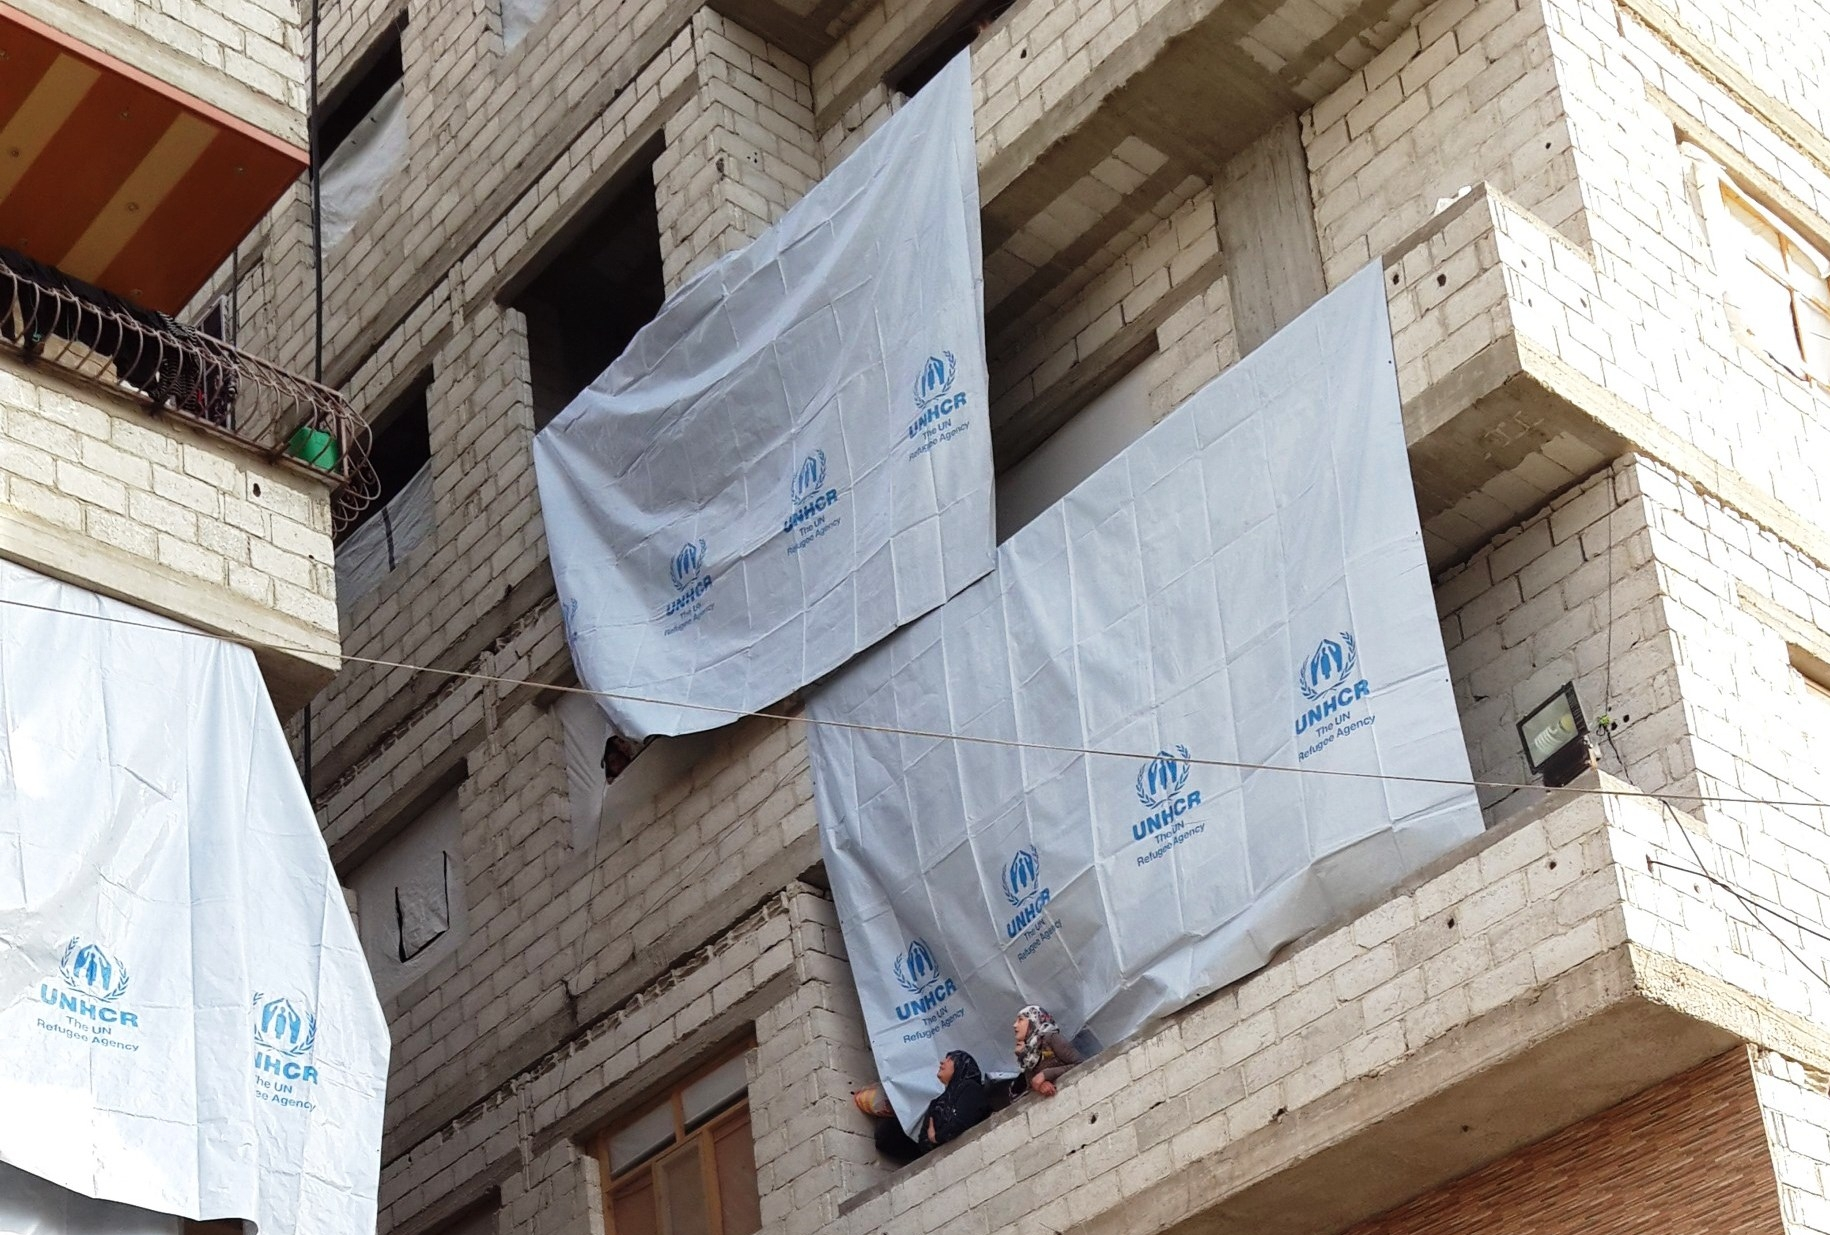 Two women wearing veils on a balcony in a building draped with UNHCR flags.